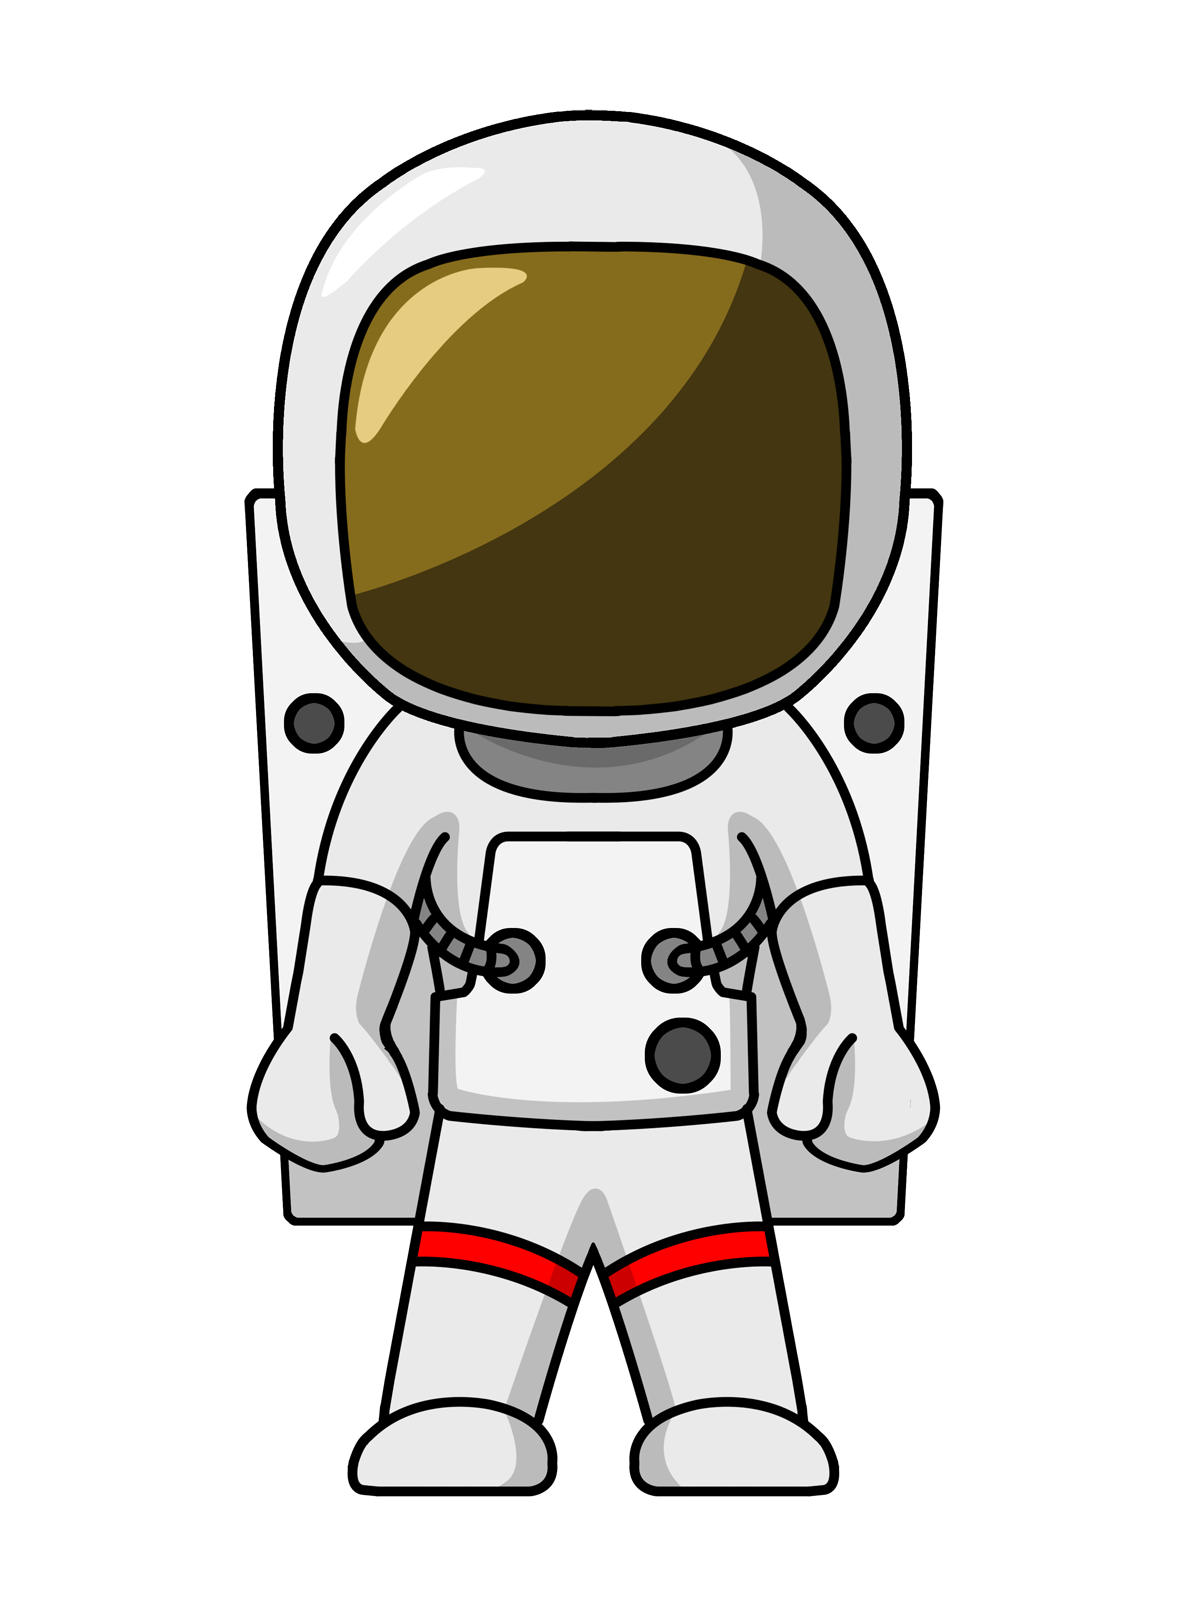 Astronaut clipart body. The vortex tunnel and